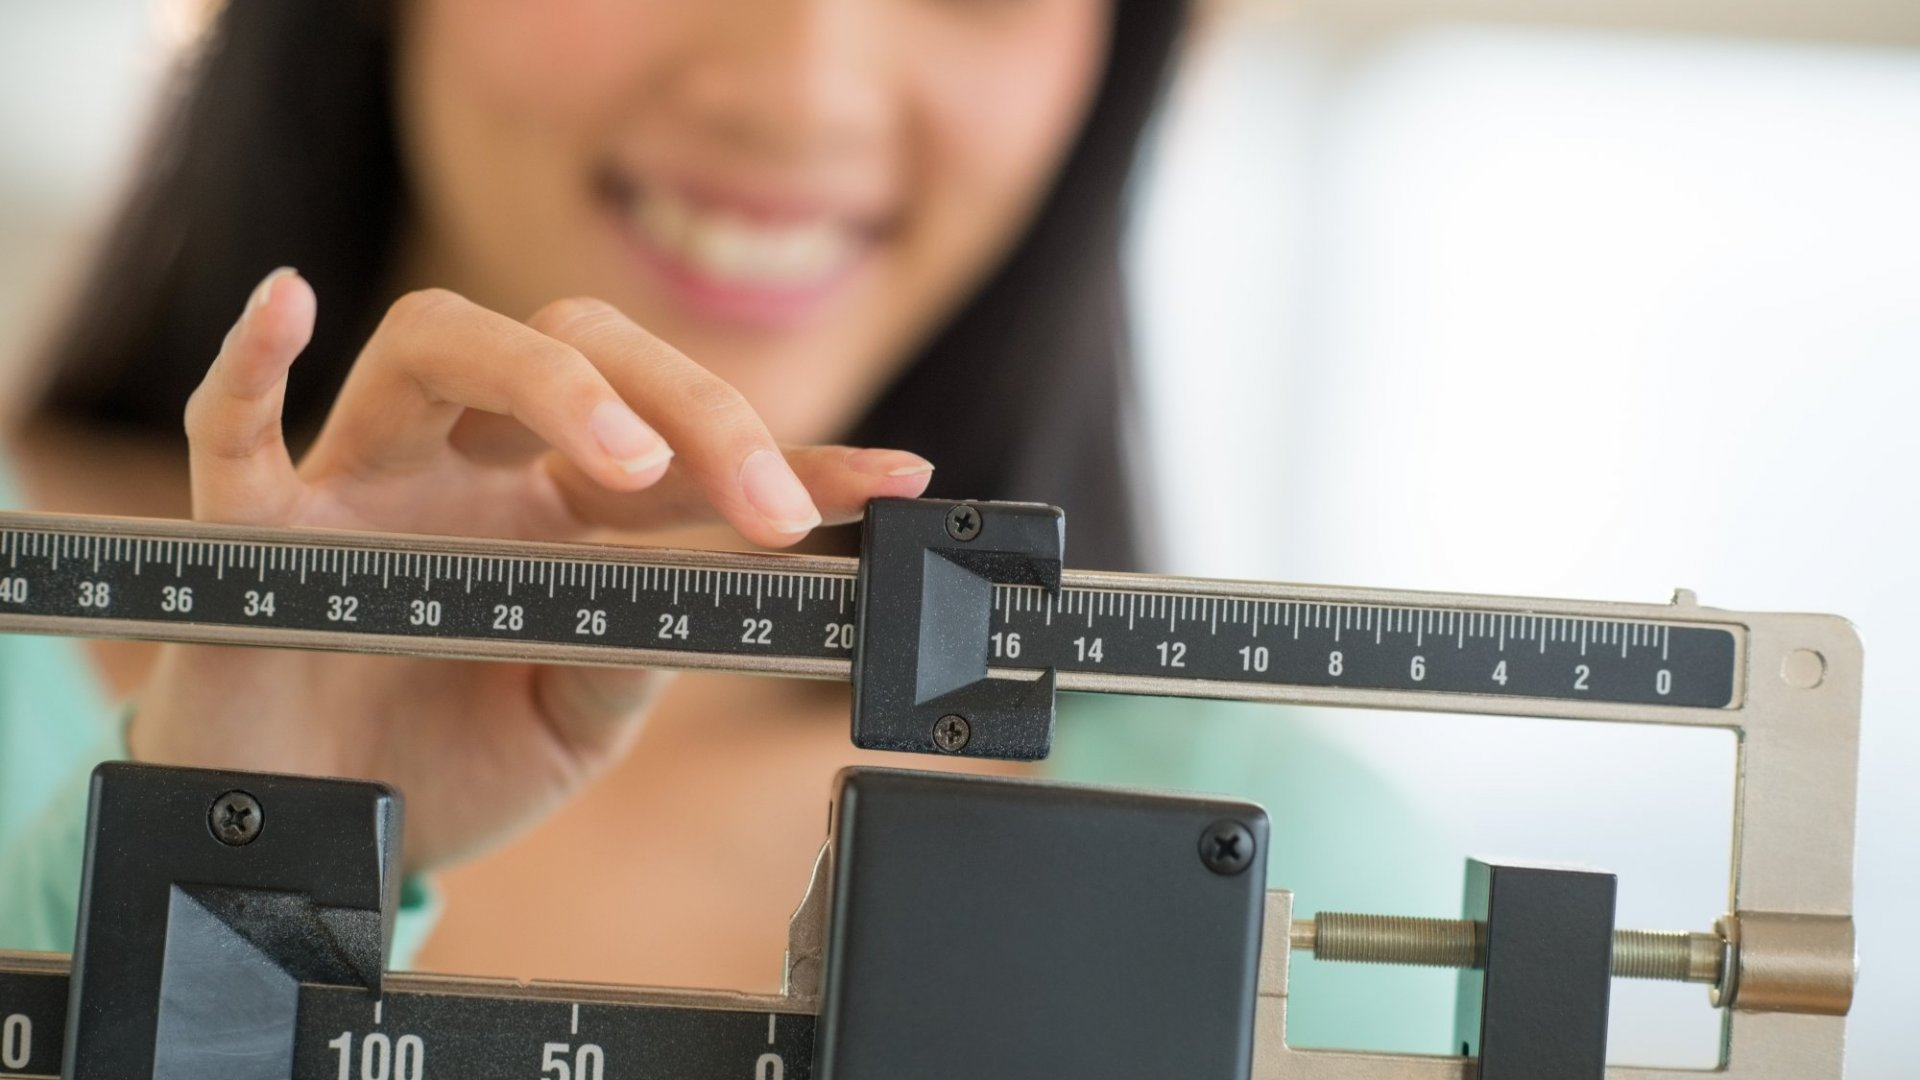 How to Lose Weight Without Dieting: 8 Simple Ways, Backed by Science